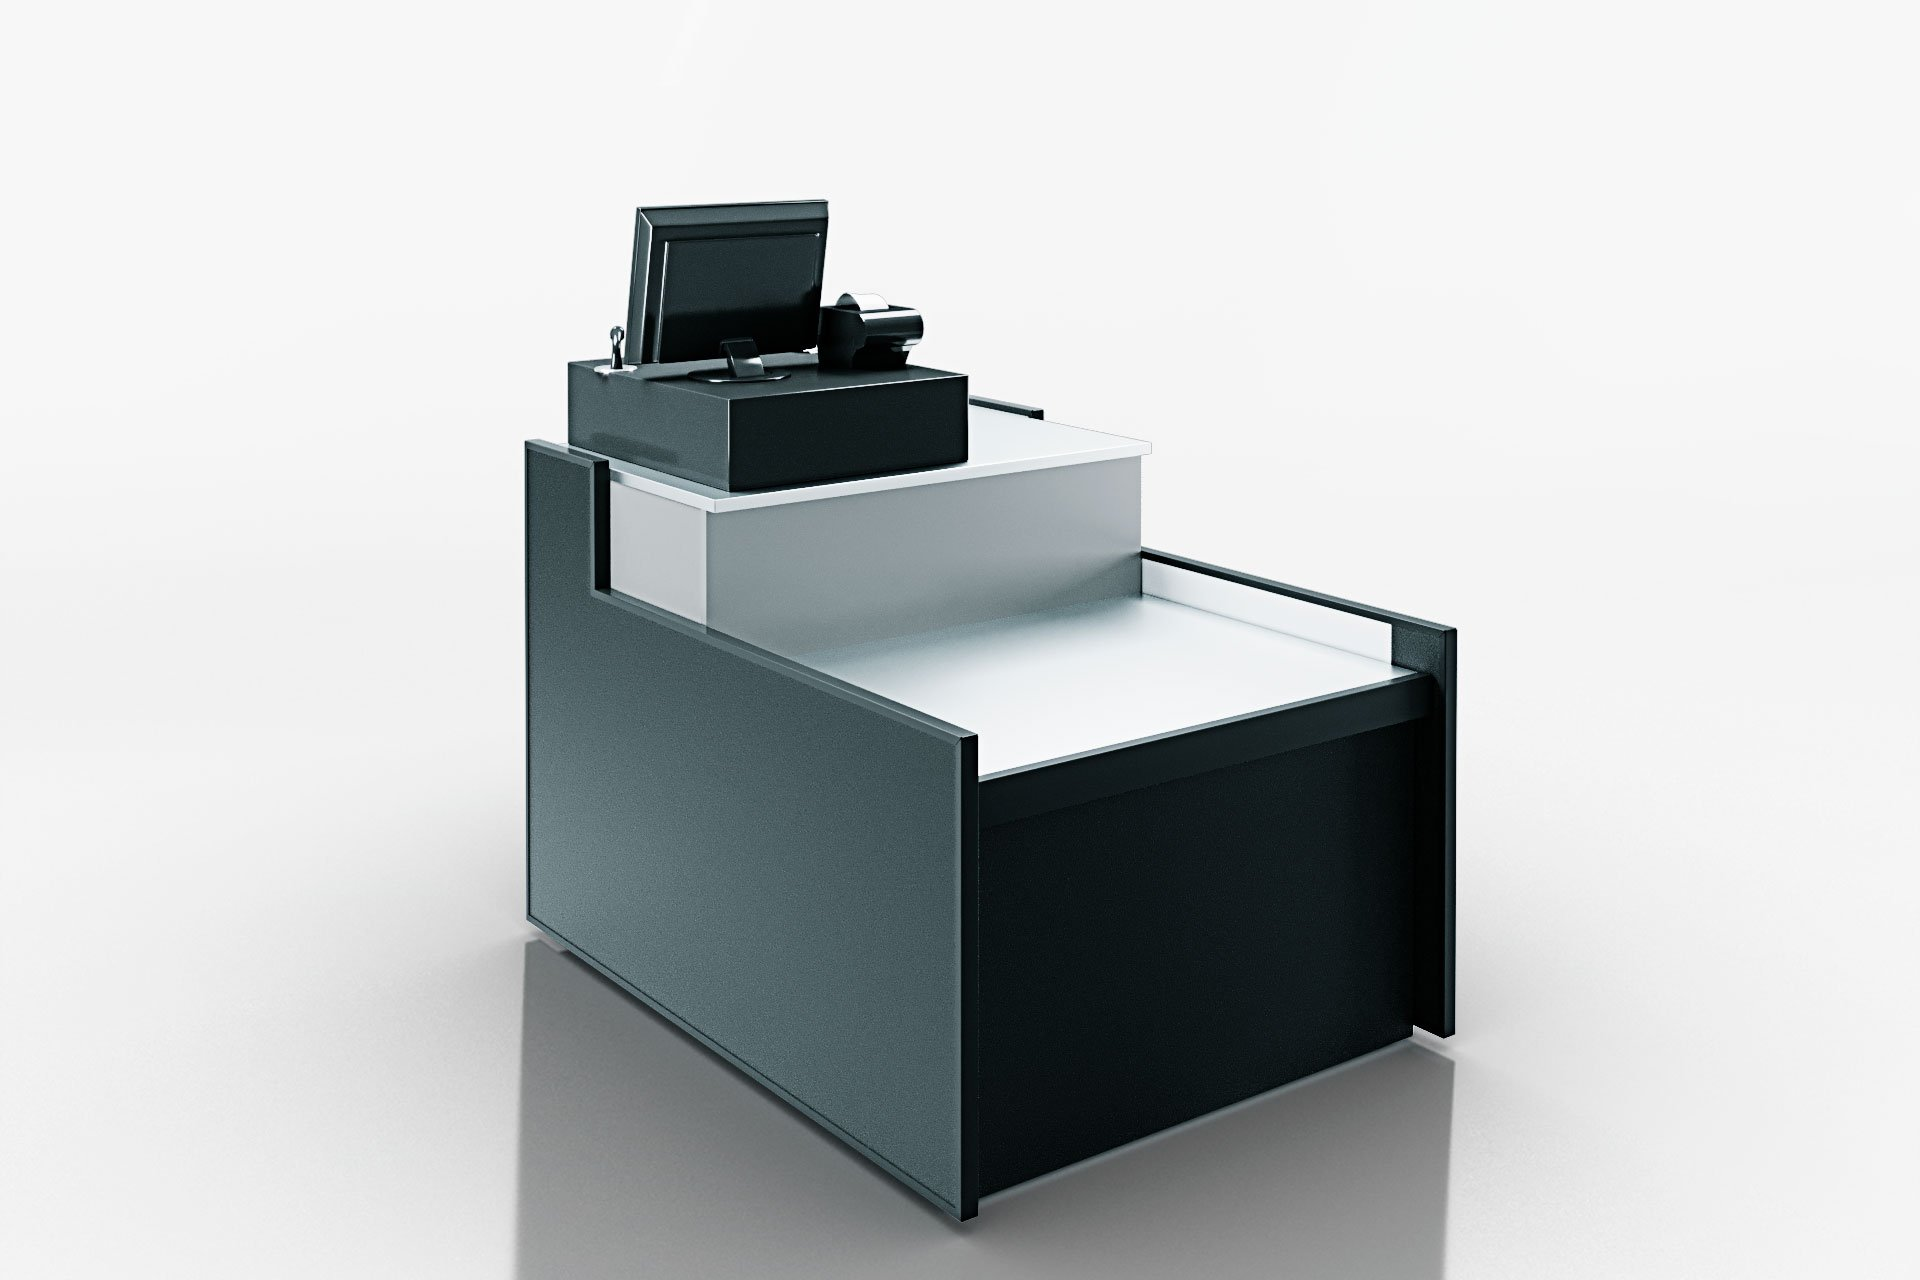 מקרר תצוגה MISSOURI NC 120 CASH DESK